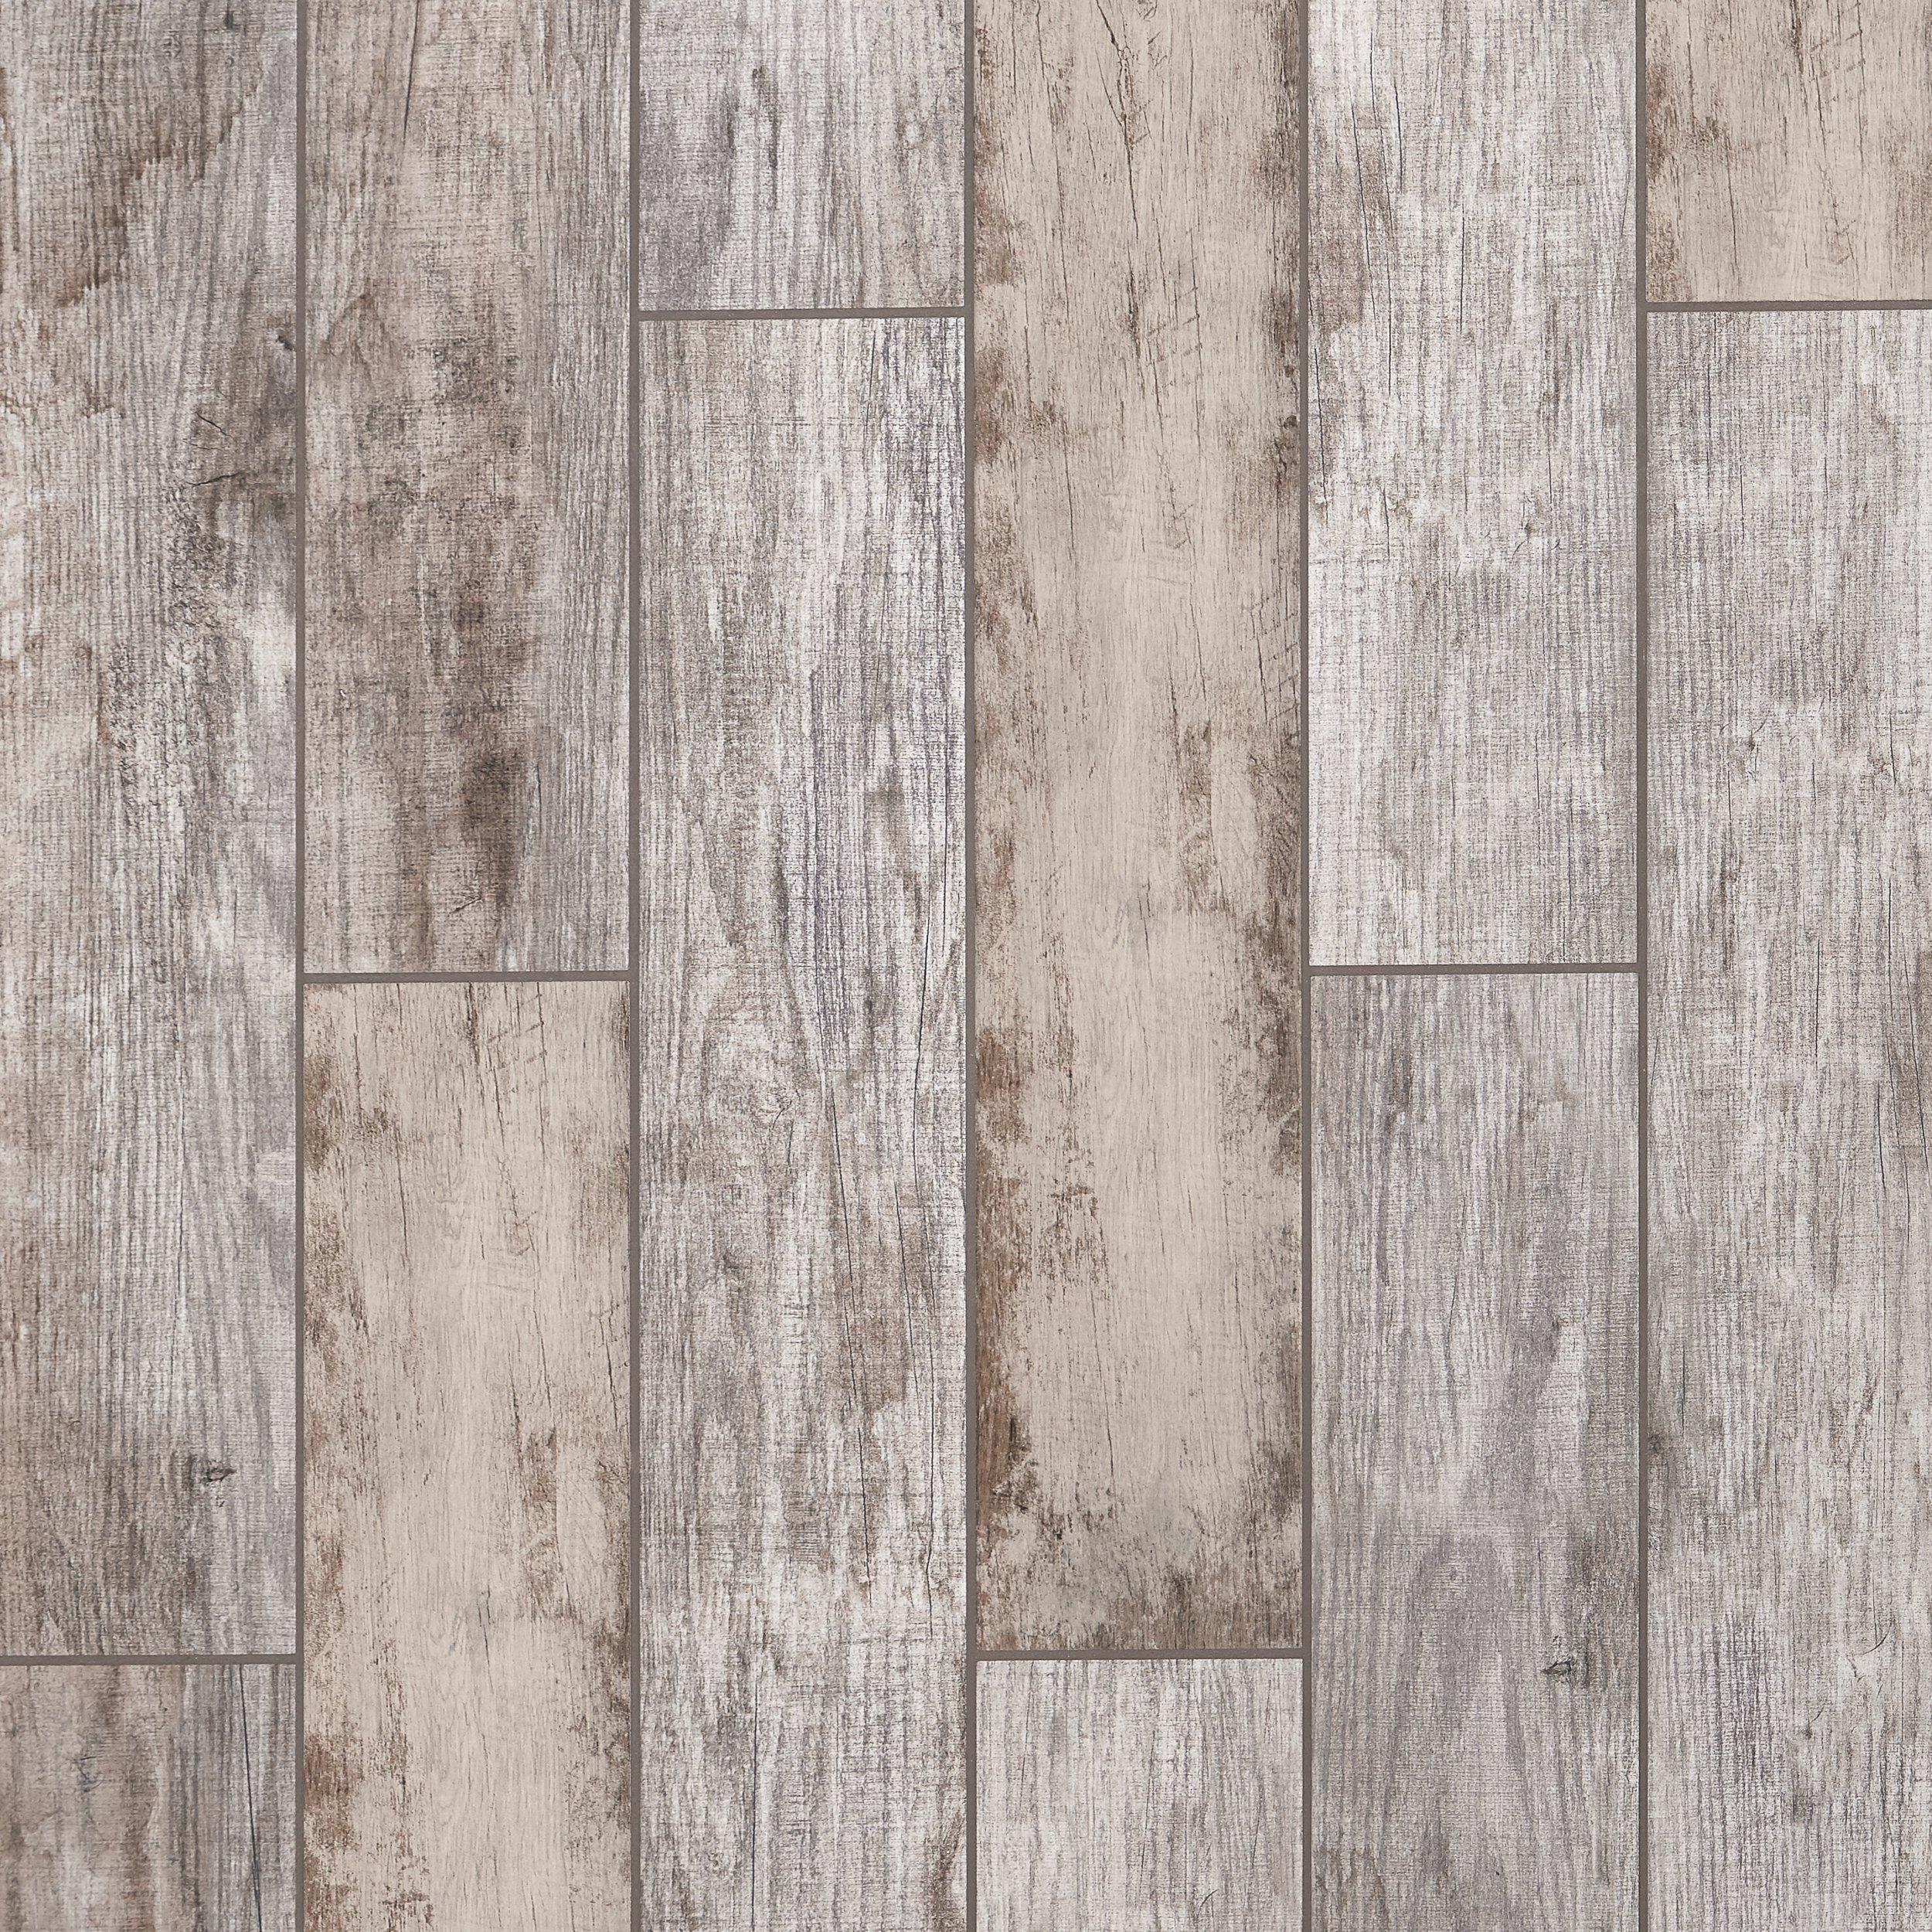 Arden Manor White Wood Plank Porcelain Tile   6 X 36   100559053 | Floor  And Decor